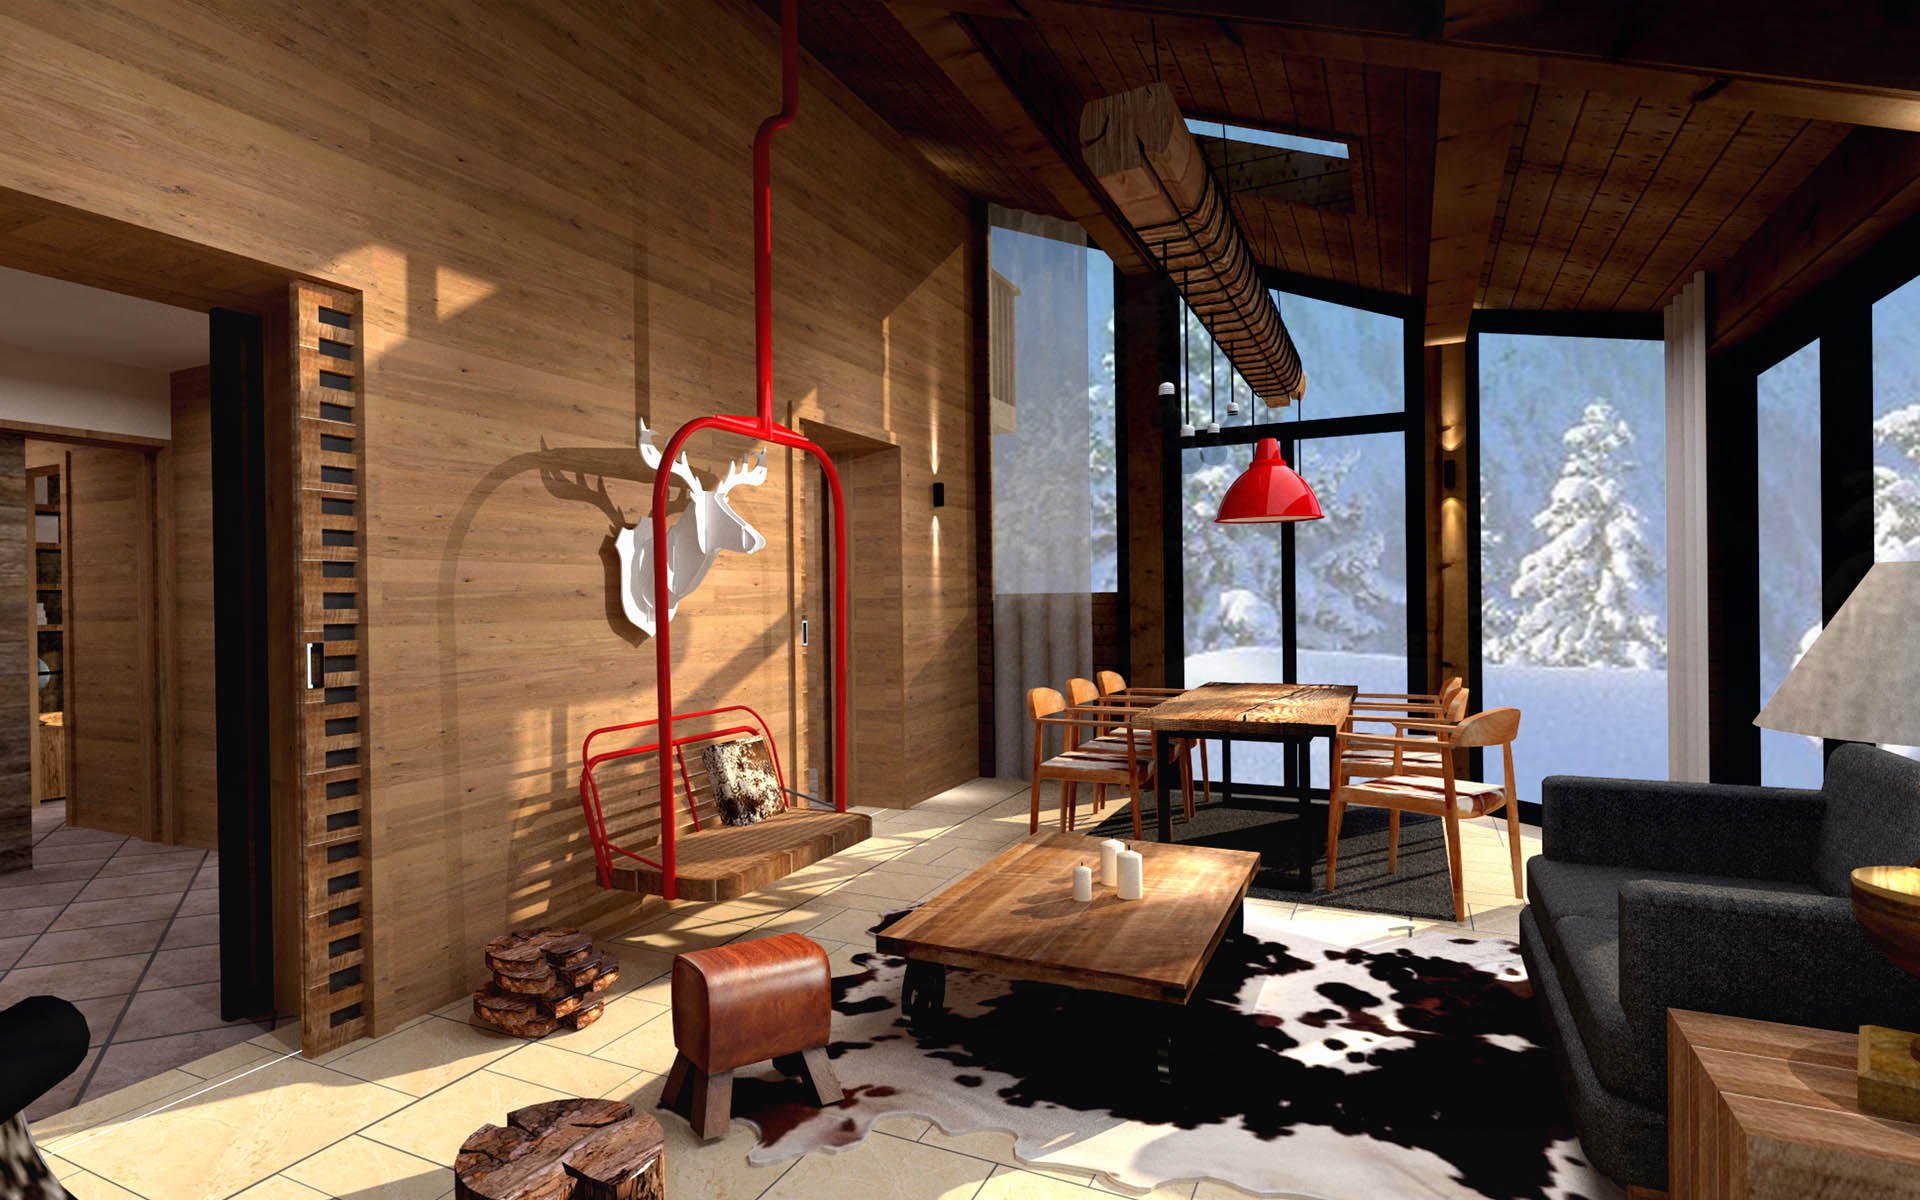 Chalet villar st pancrace red banana studio concepteur d 39 int rieur for Interieur chalet montagne photo